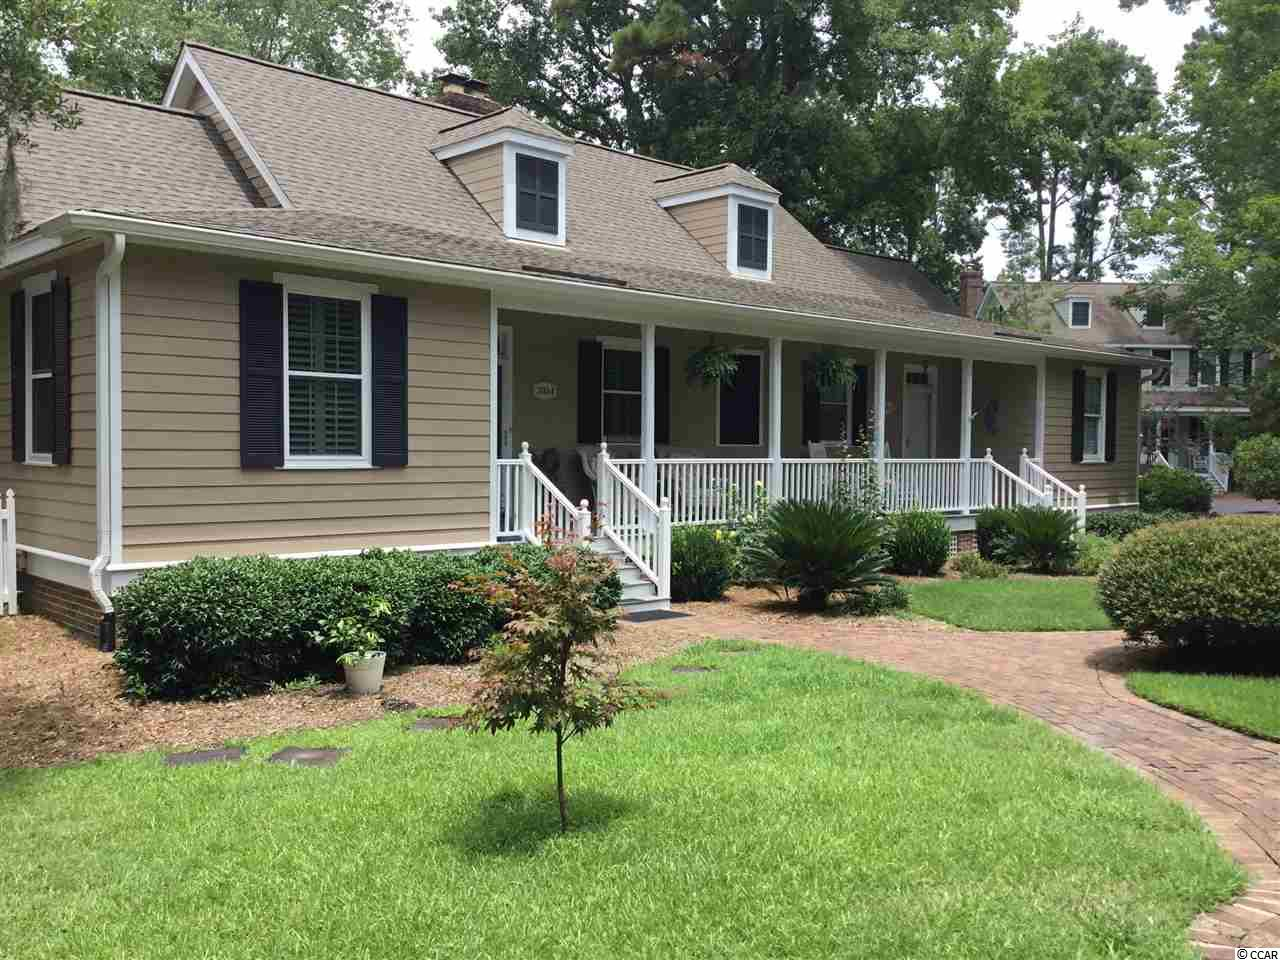 "THIS BEAUTIFUL COTTAGE-STYLE CONDO IN WACHESAW PLANTATION IS NESTLED UNDER MAJESTIC LIVE OAK TREES AND HAS AMAZING AMENITIES TO OFFER.  FROM YOUR SCREENED BACK PORCH OR YOUR OPEN FRONT PORCH, YOU WILL ENJOY THE VIEWS OF THIS OLD PLANTATION.  THERE ARE SEVERAL MEMBERSHIP OPTIONS FOR THE GOLF COURSE, POOL, POOL BAR & GRILL, TENNIS COURTS AND KIMBELS RESTAURANT.  ENJOY COOL EVENINGS IN FRONT OF YOUR OPEN FIREPLACE OR SIT AT THE BAR WHILE ENTERTAINING FROM YOUR KITCHEN.  THIS TRULY IS A SPECIAL AND ONE-OF-A-KIND HOME LOCATED IN AN OLD SOUTH PLANTATION COMMUNITY.  THE OWNER TAKES  PRIDE IN OFFERING THIS HOME IN GREAT ""MOVE-IN"" CONDITION.  ALL ROOMS HAVE BEEN RECENTLY PAINTED IN AN UP-TO-DATE COLOR WHICH WILL MAKE IT EASY FOR YOUR DECORATING NEEDS TO MAKE THIS HOME WARM AND INVITING.  WE INVITE YOU TO PREVIEW THIS HOME QUICKLY AS IT WON'T LAST LONG."